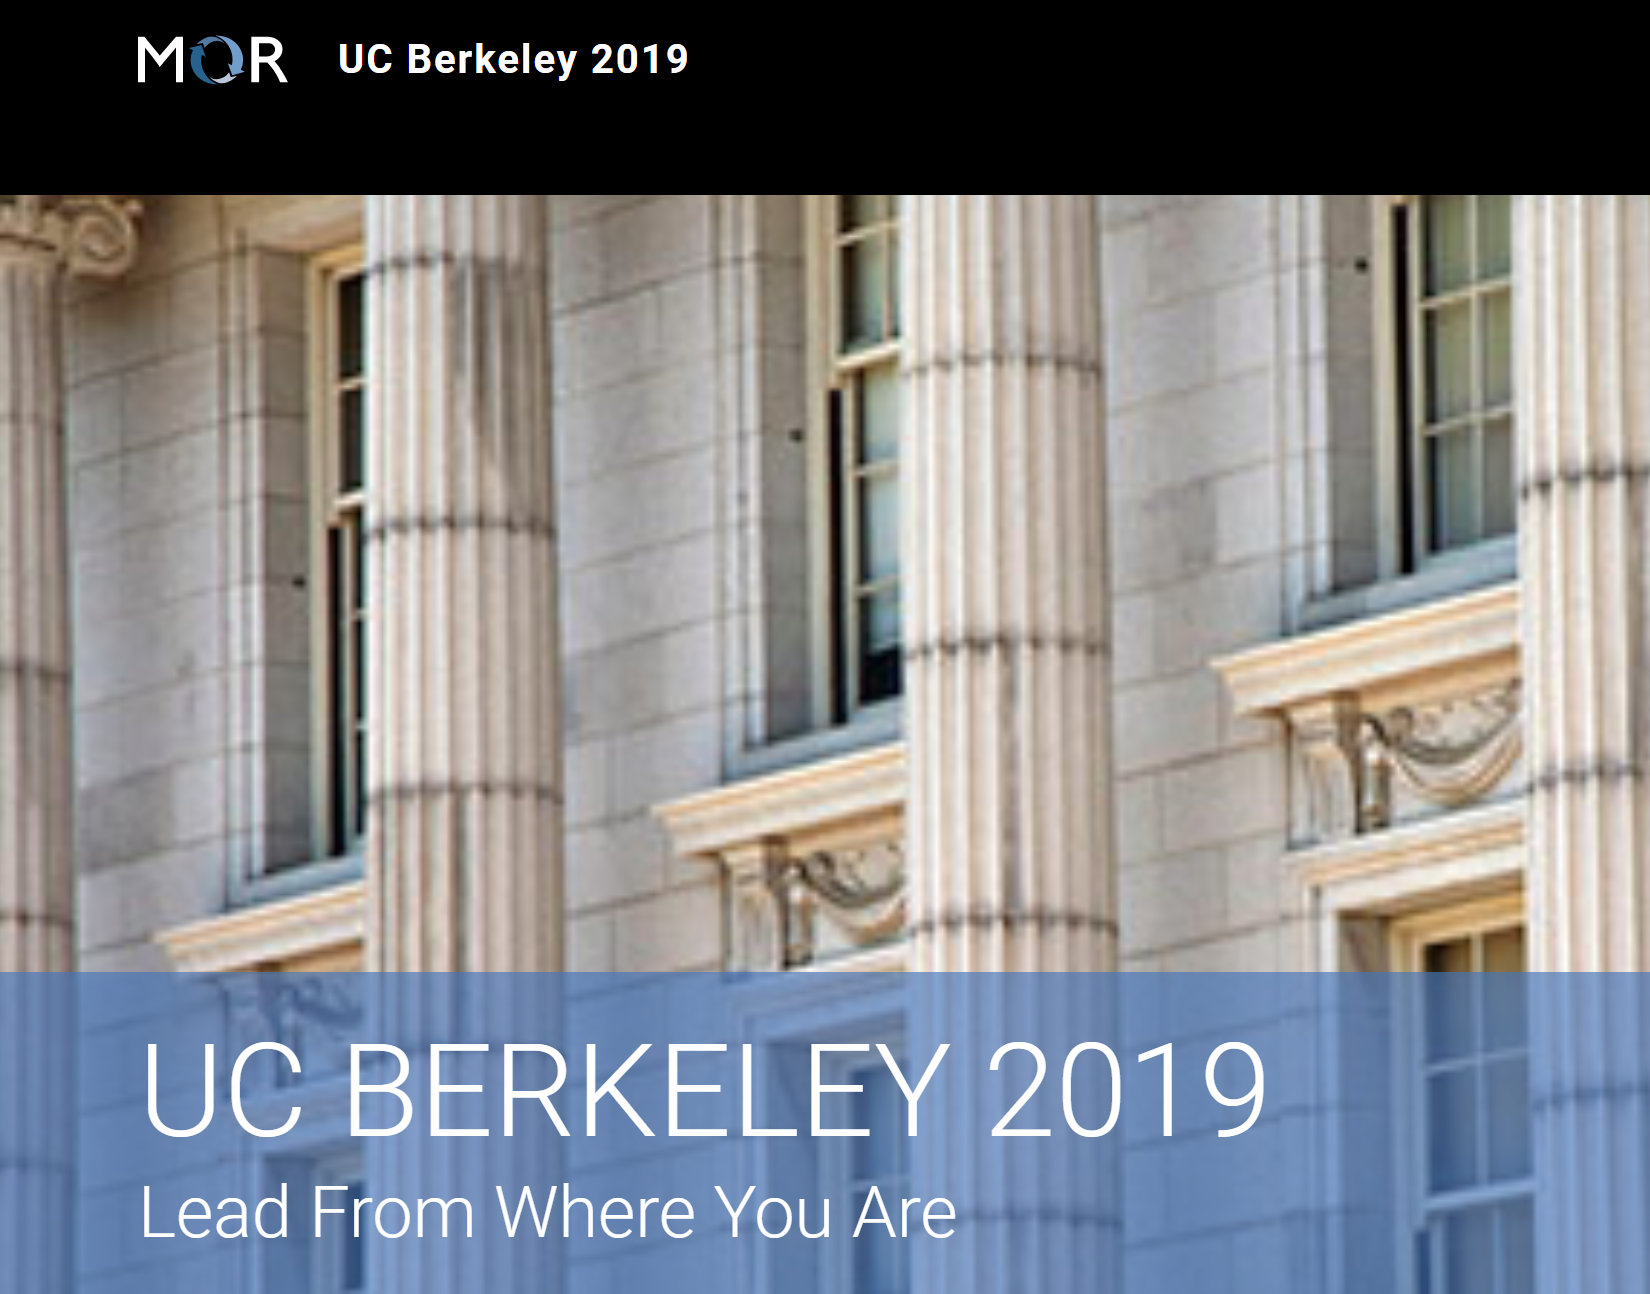 Visit the Mor UC BERKELEY 2019 Lead From Where You Are website